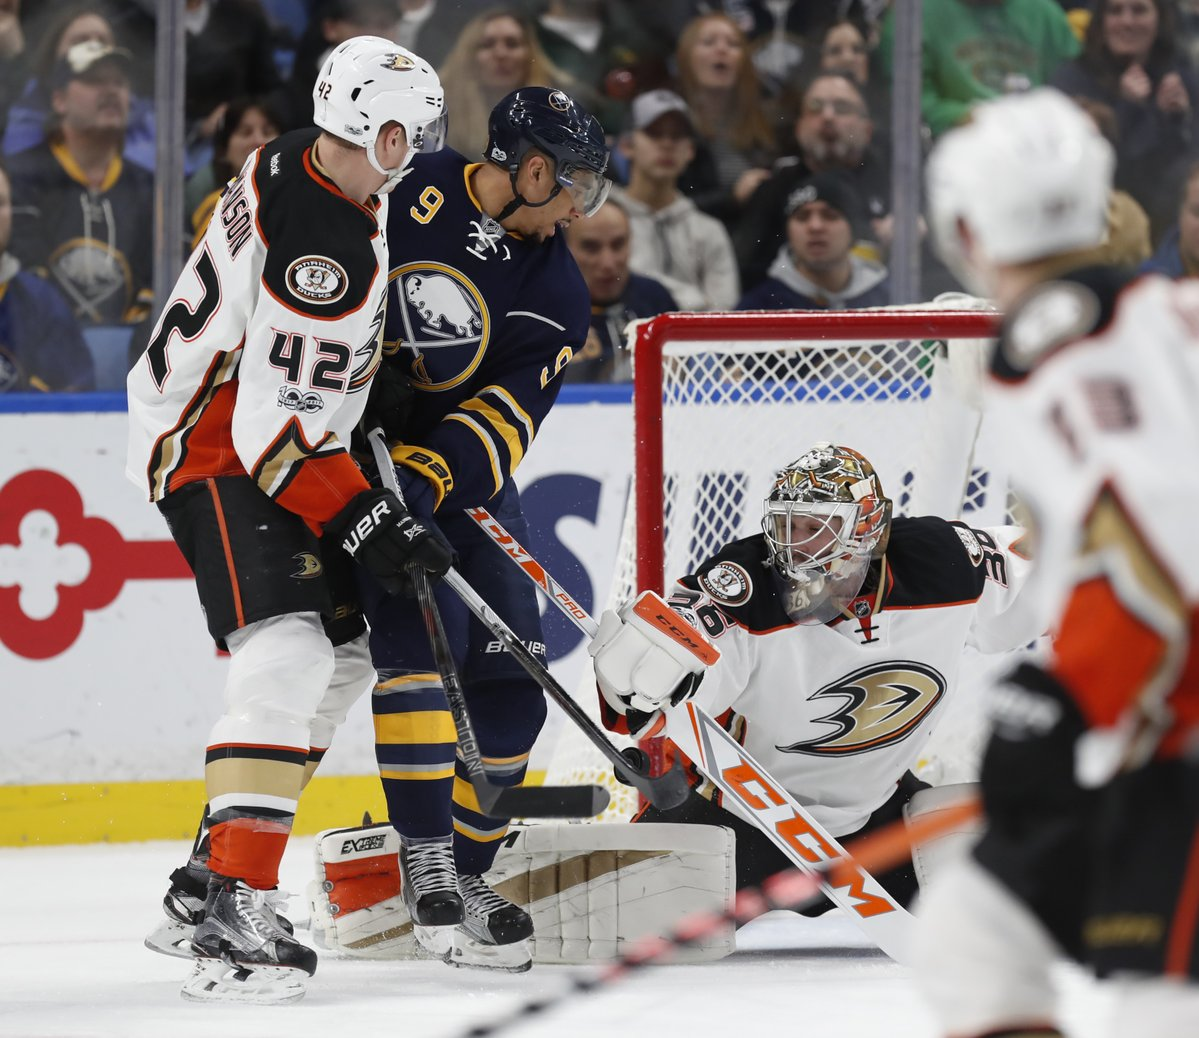 Evander Kane works against Ducks defenseman Josh Manson and goalie John Gibson (Harry Scull Jr./Buffalo News).